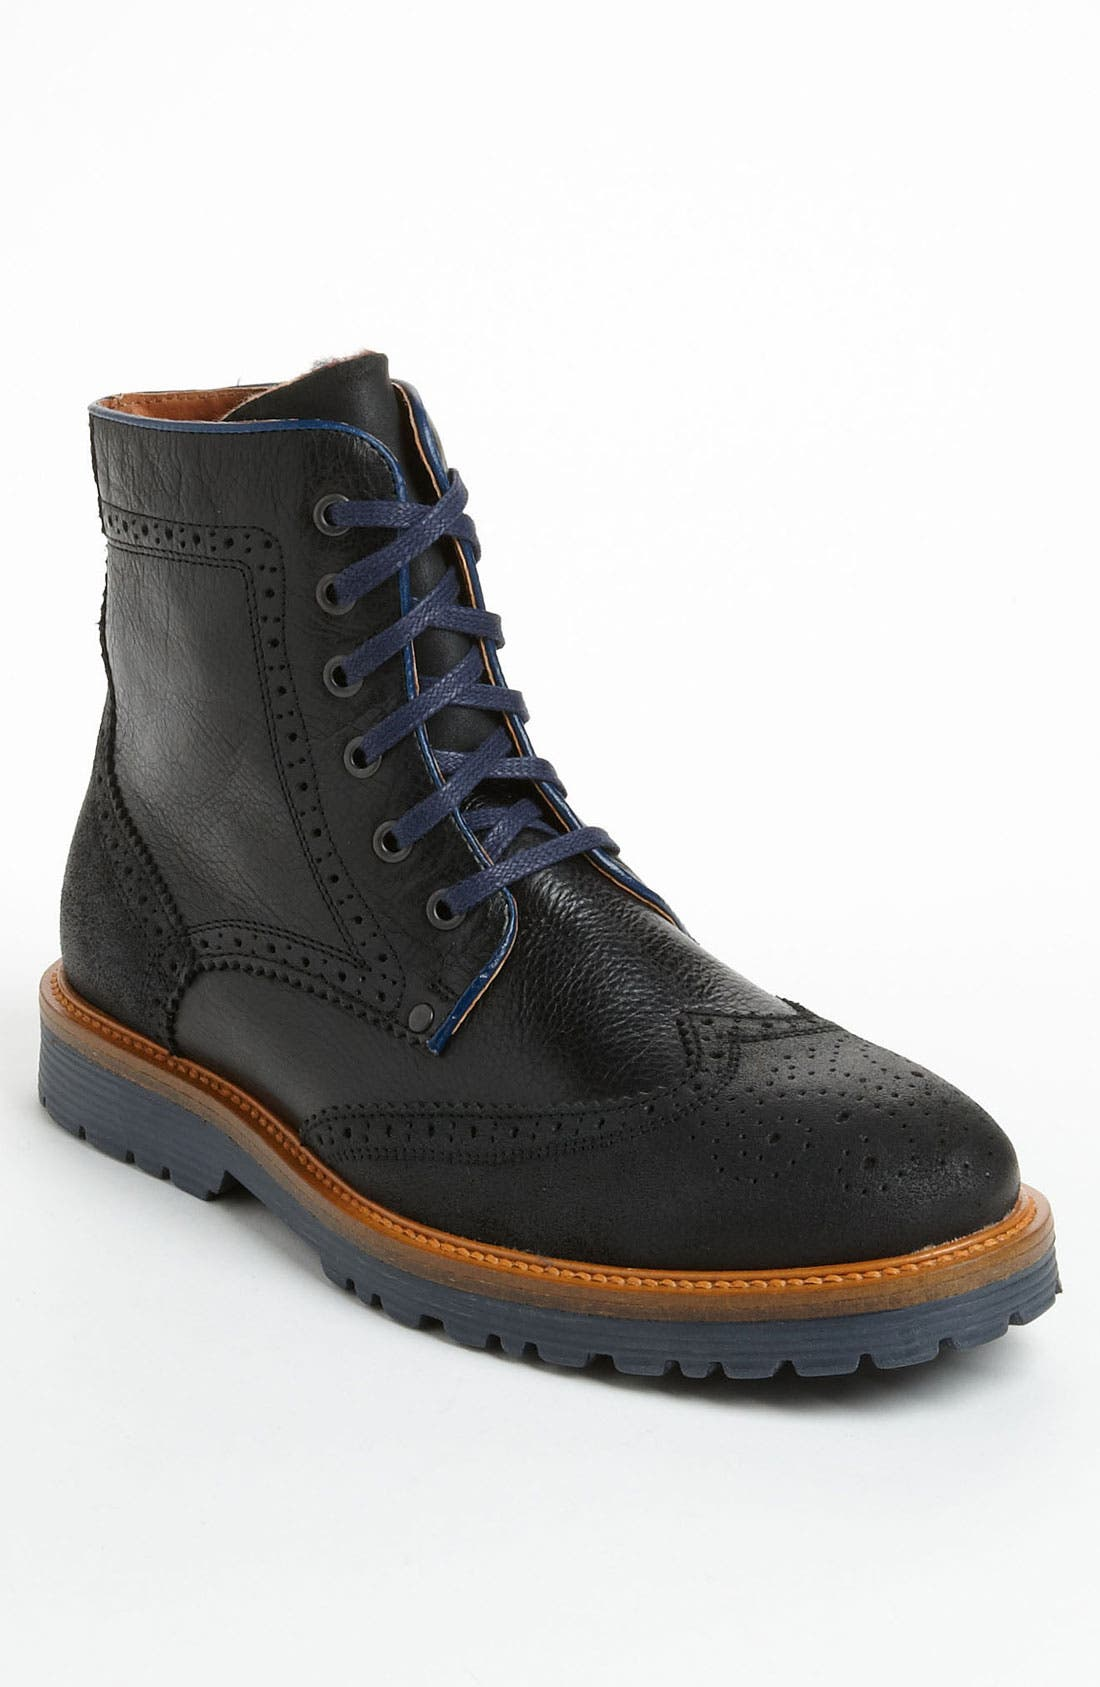 Alternate Image 1 Selected - Kenneth Cole Reaction 'N Great De-Taille' Wingtip Boot